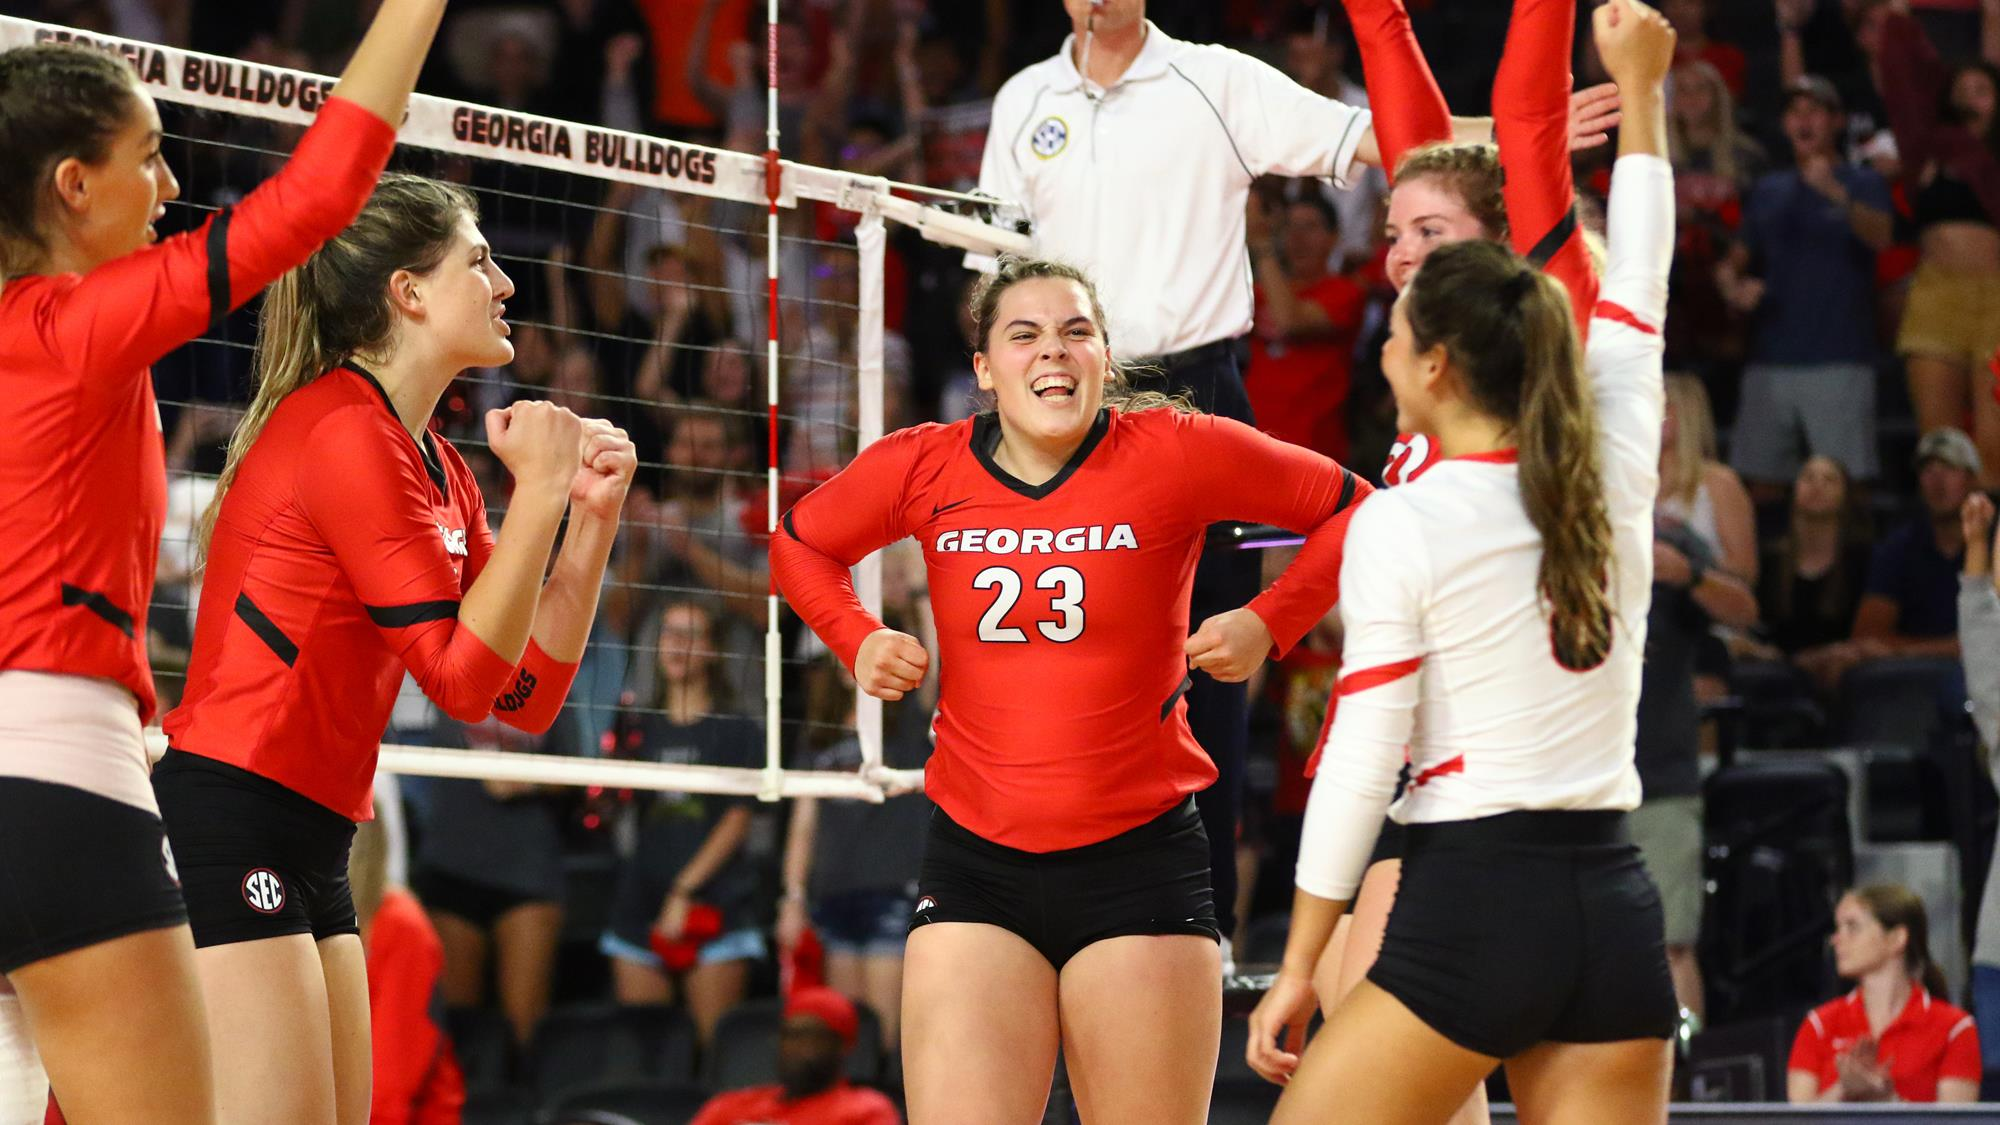 Photo: Kacie Evans (23), University of Georgia Athletics